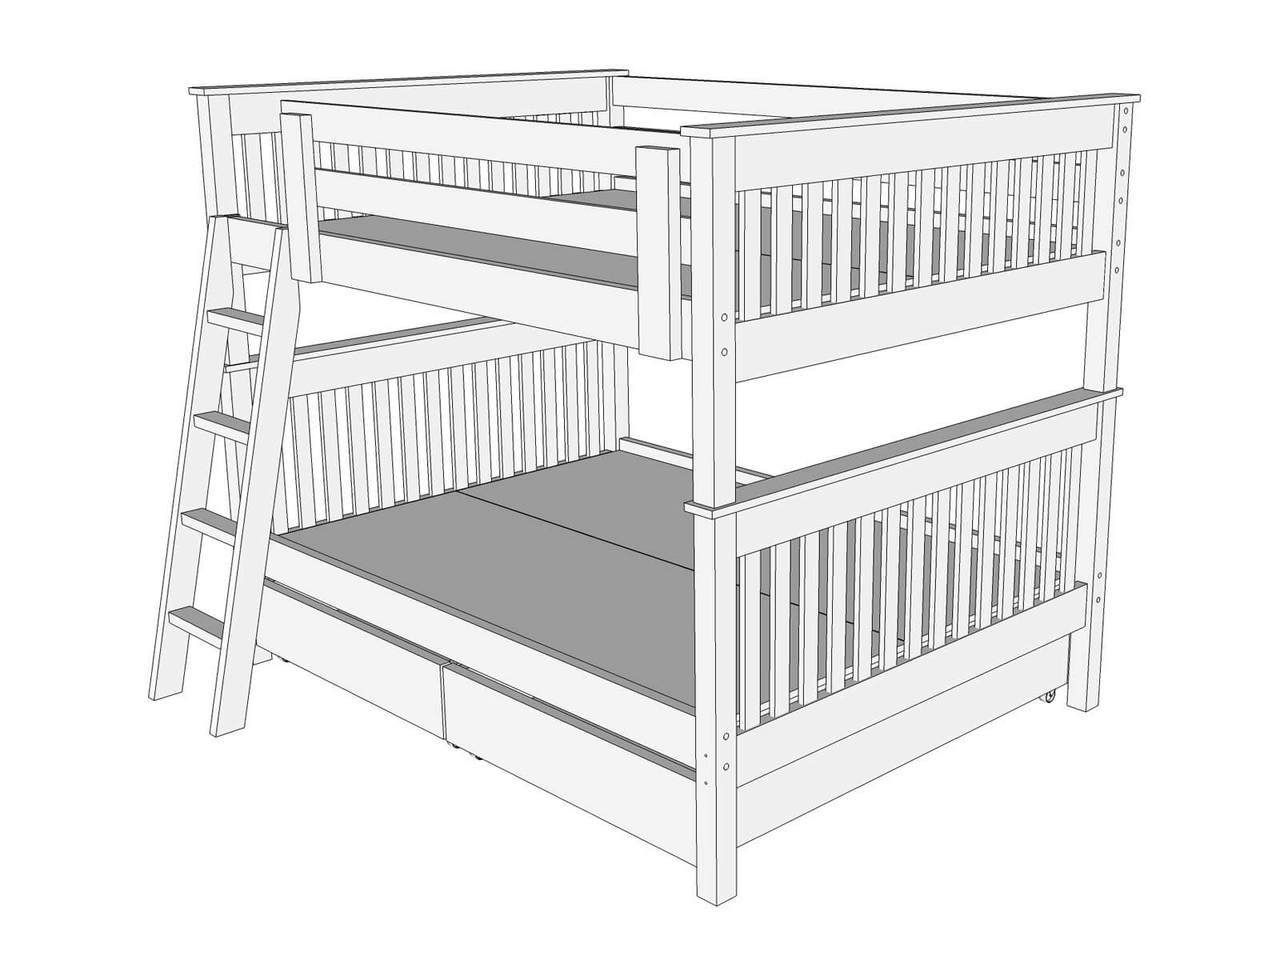 Queen loft bed ideas  Drawing   Right View of Bunk Bed B  Home decor  Pinterest